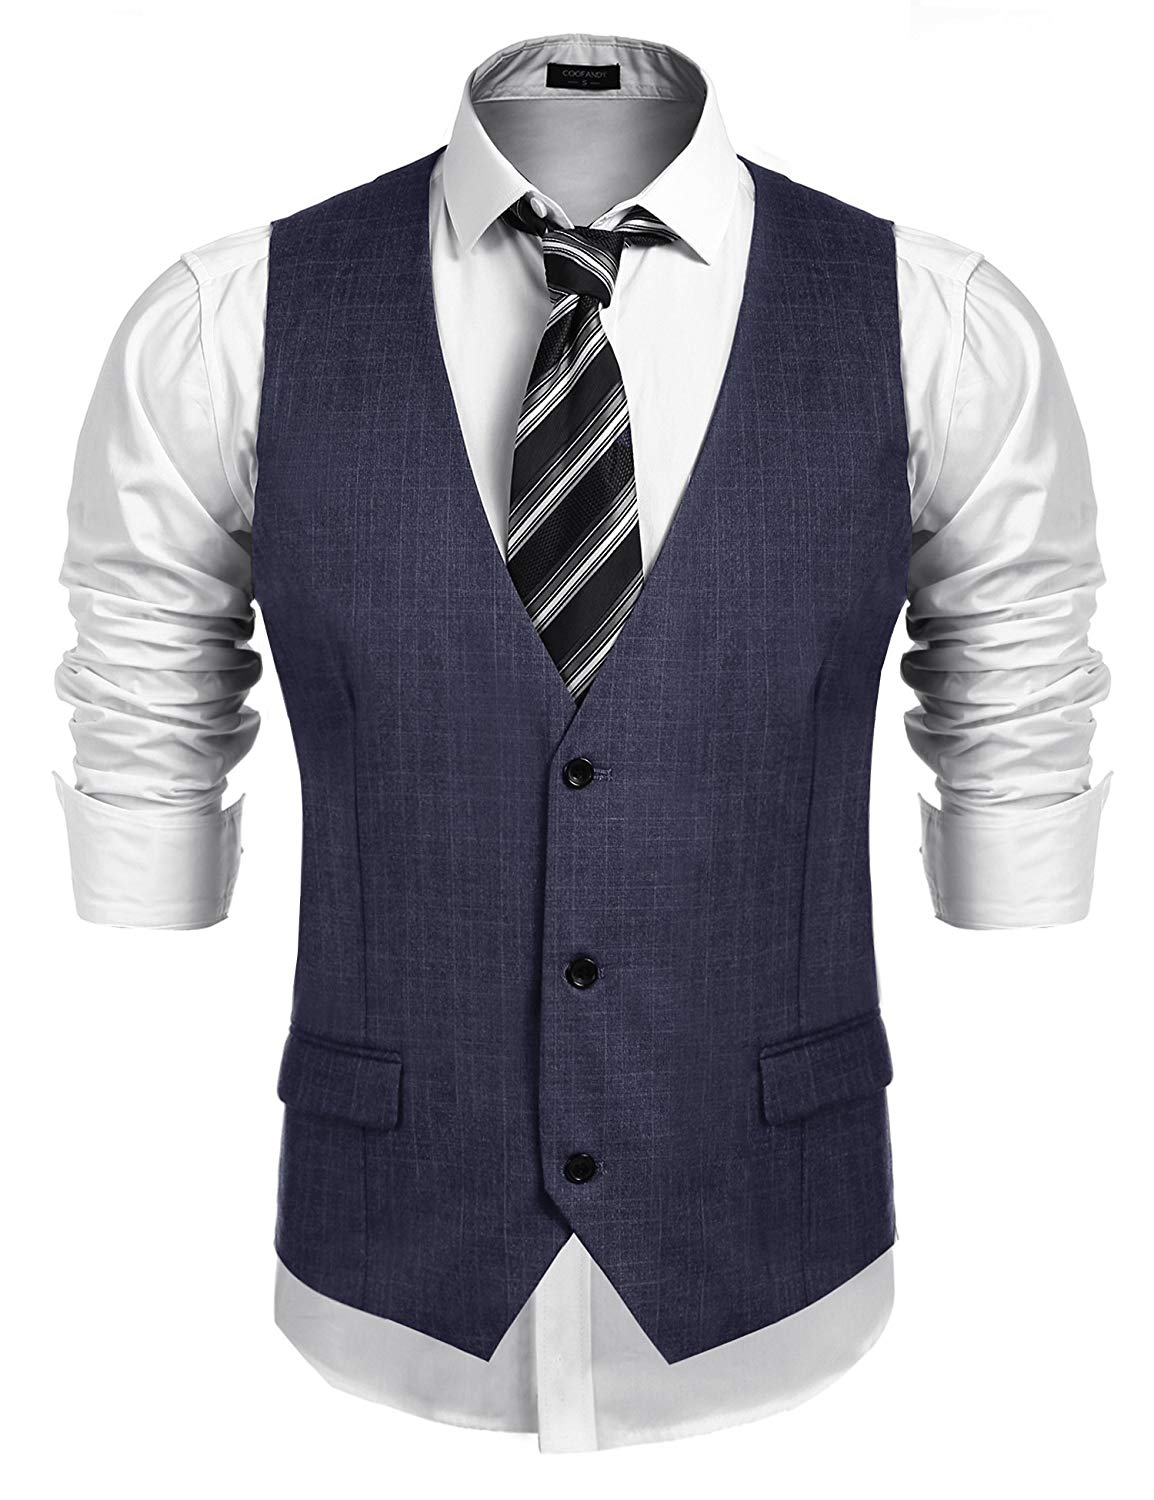 COOFANDY Men's Business Suit Vest,Slim Fit Skinny Wedding Waistcoat